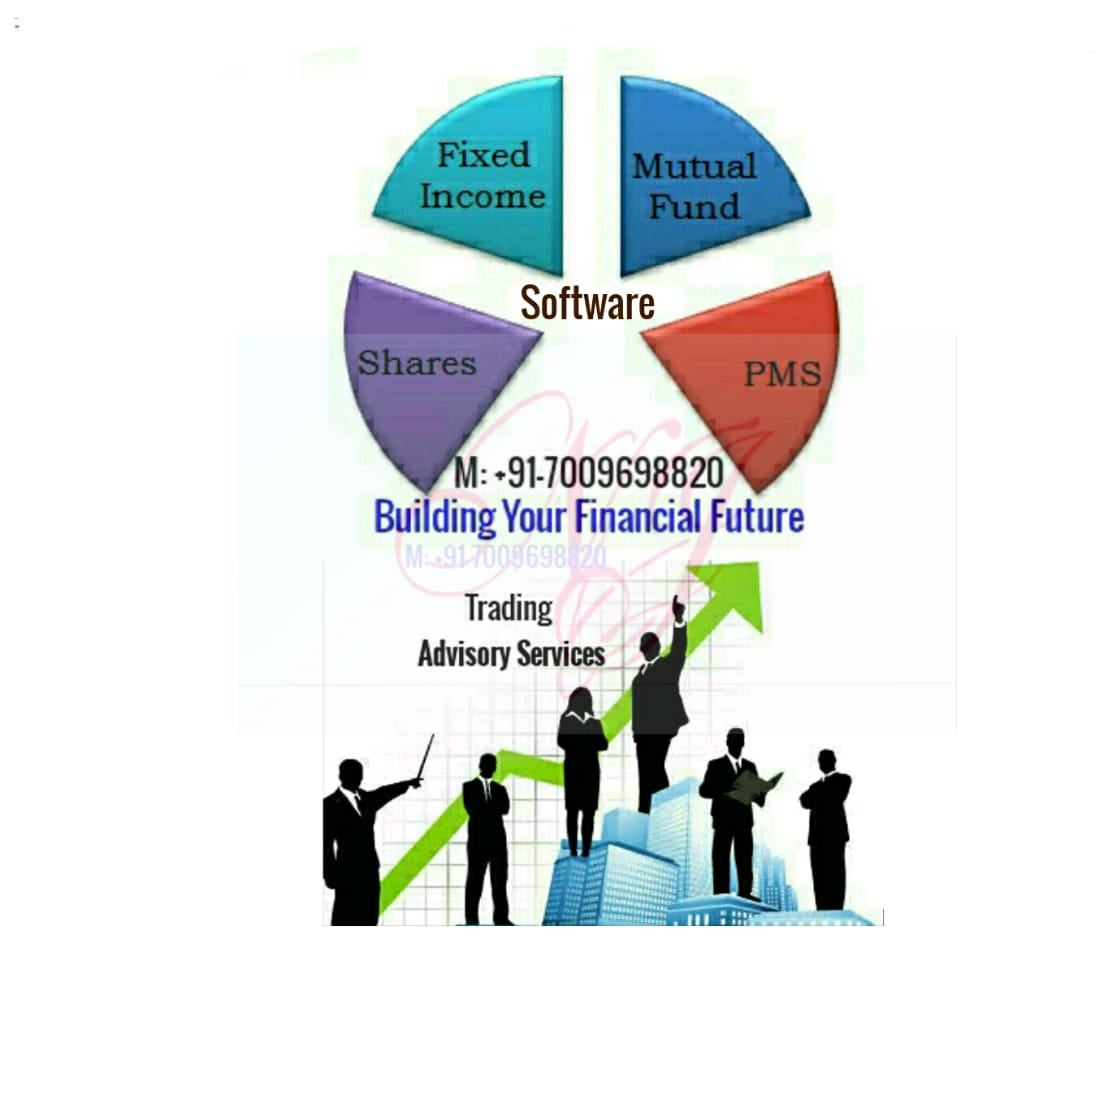 BUSINESS OPPORTUNITY UNLIMITED EARNINGS